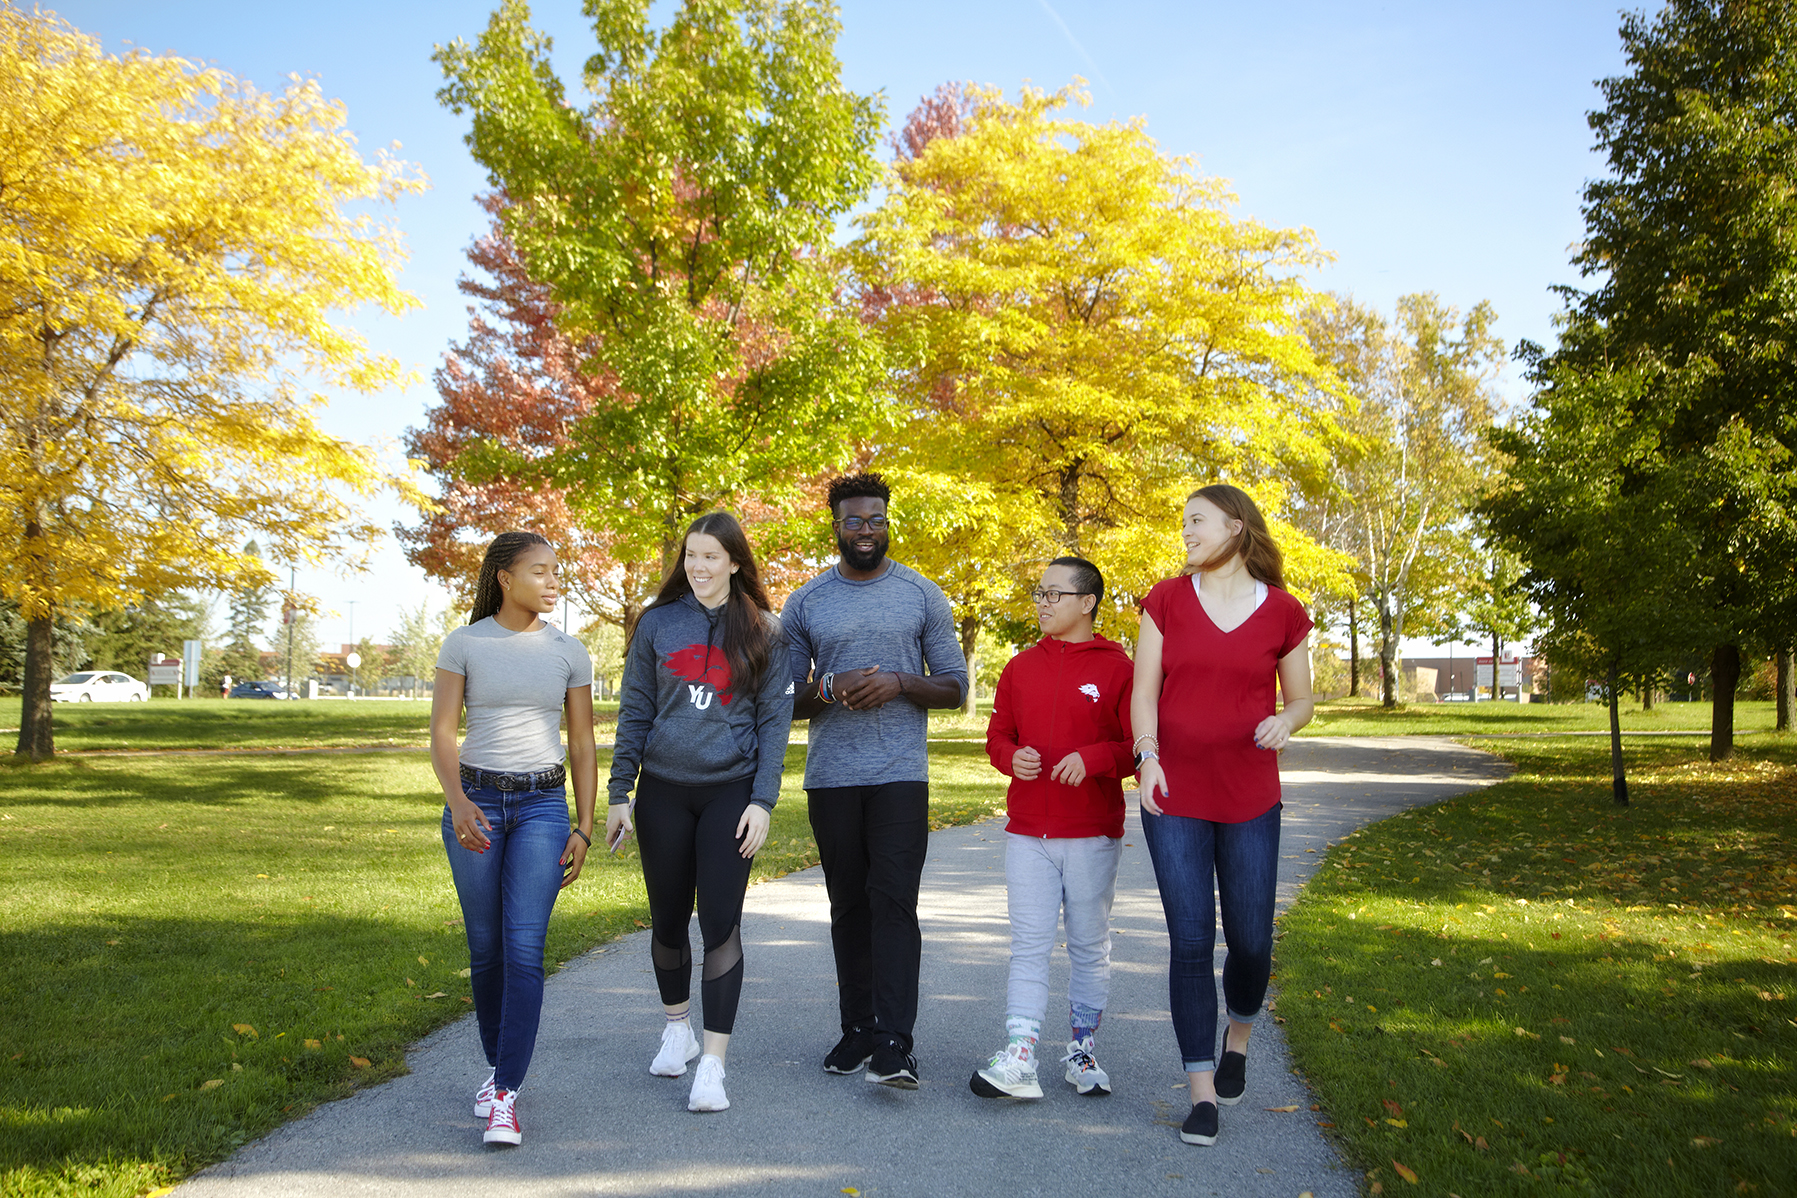 Students walking outside on campus